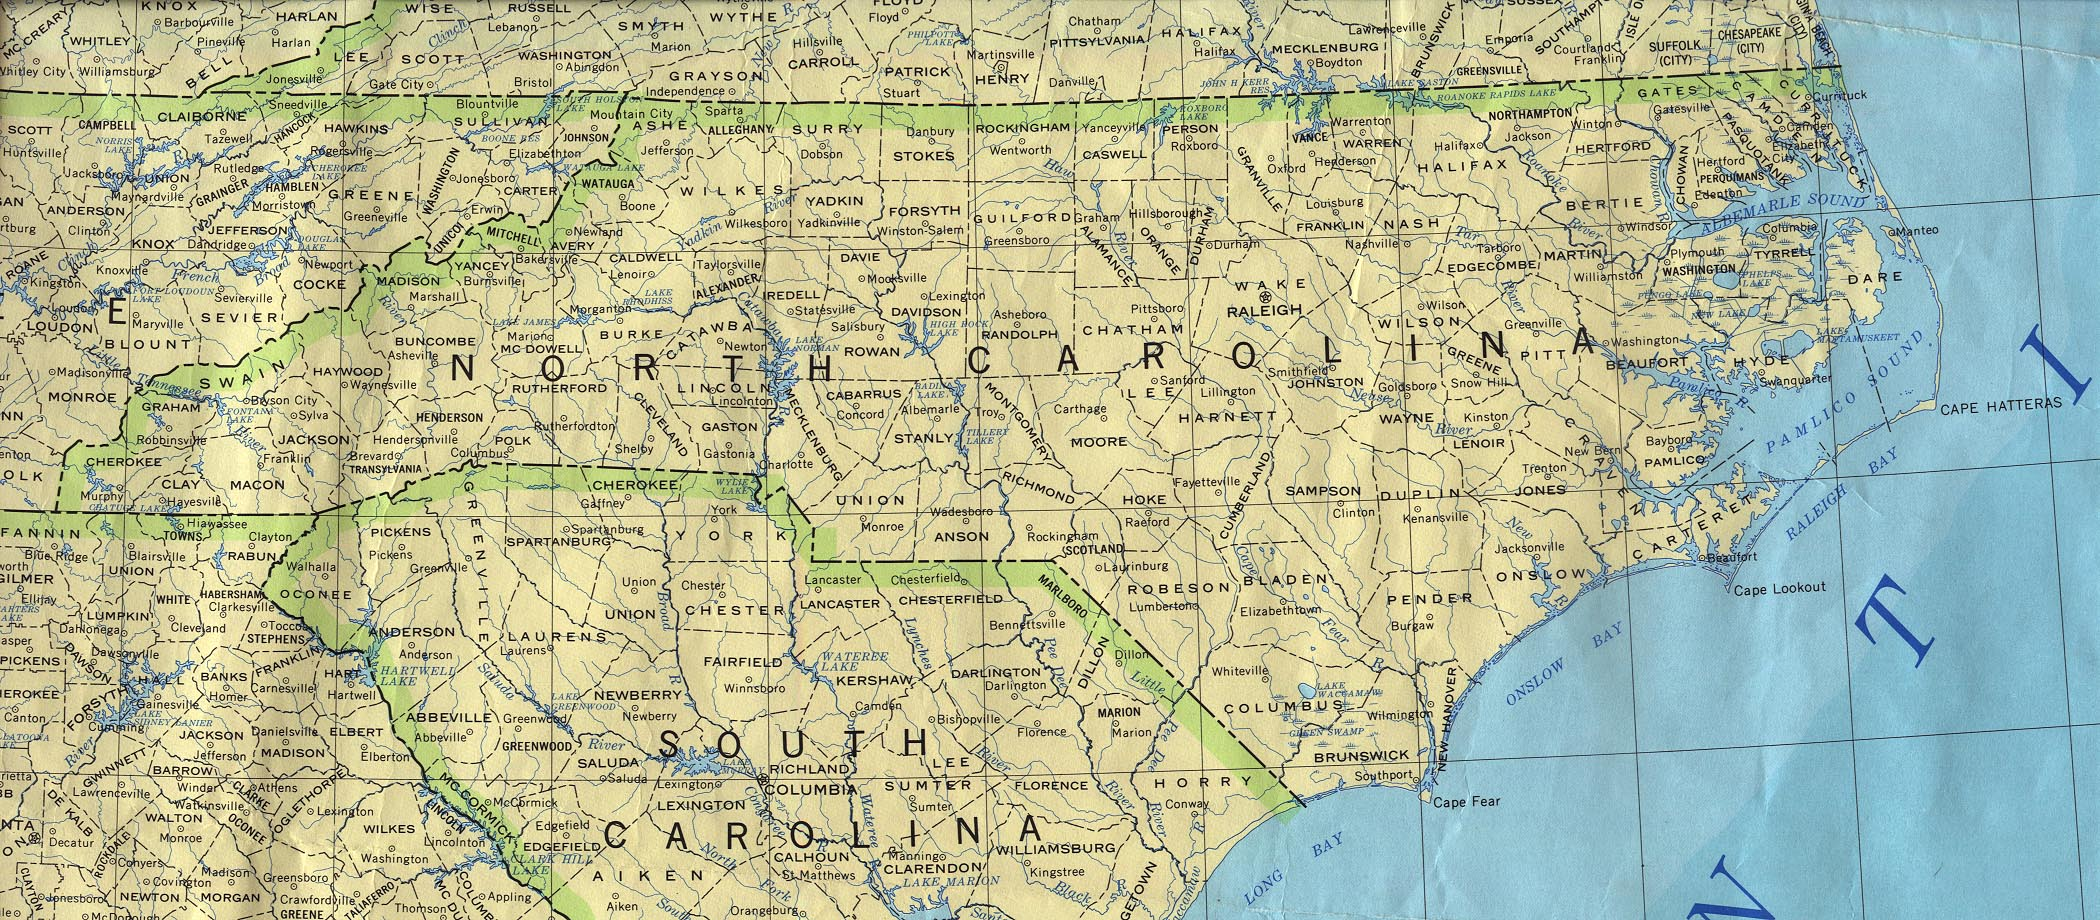 NC Historical County Lines